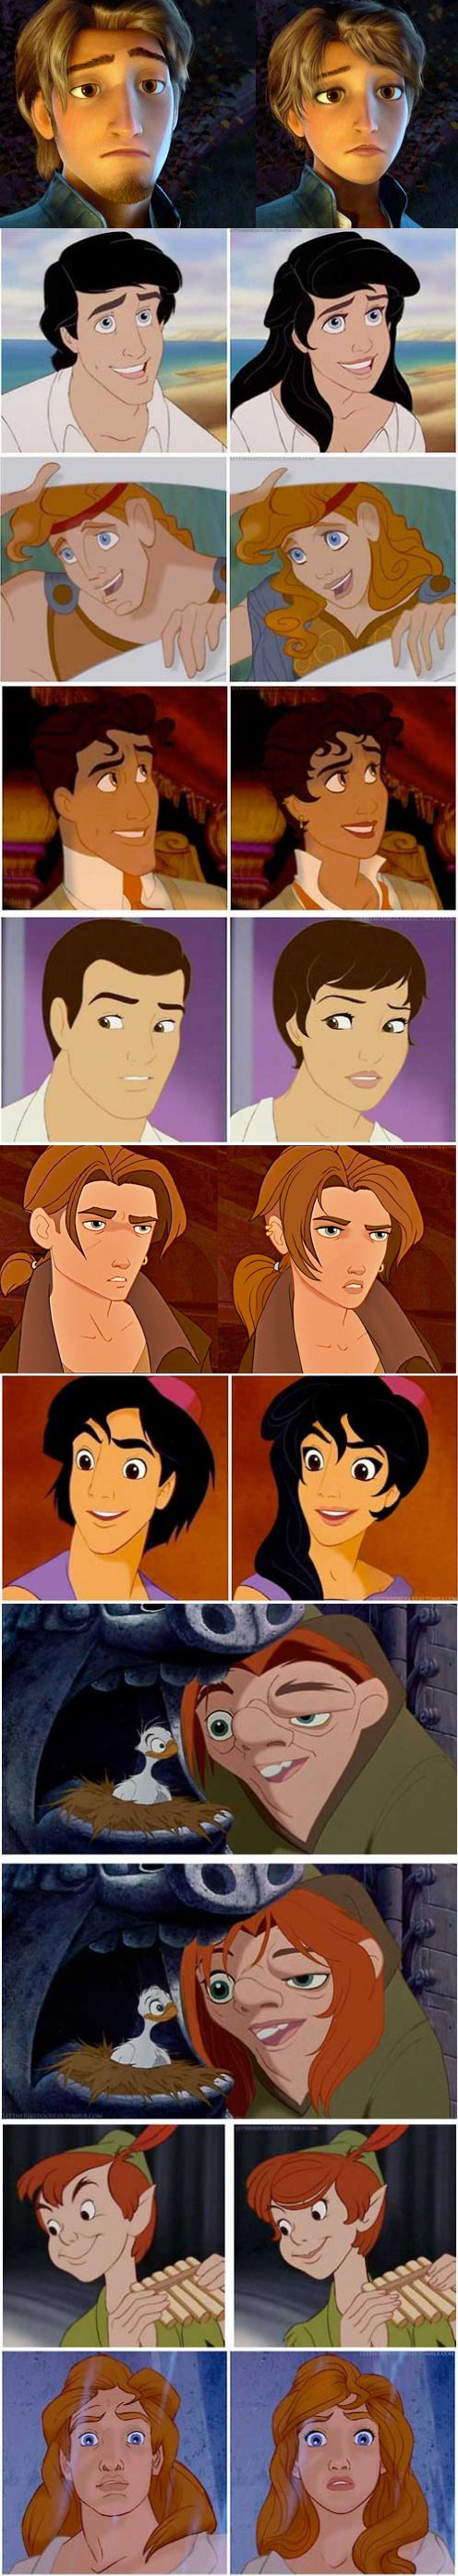 Whoever made this reveals how we see masculinity and femininity. Male characters tend to have smaller eyes, larger jaws, messier hair, and wilder eyebrows while their female characters have the opposites. I think it's very telling of our culture's perceptions about beauty.